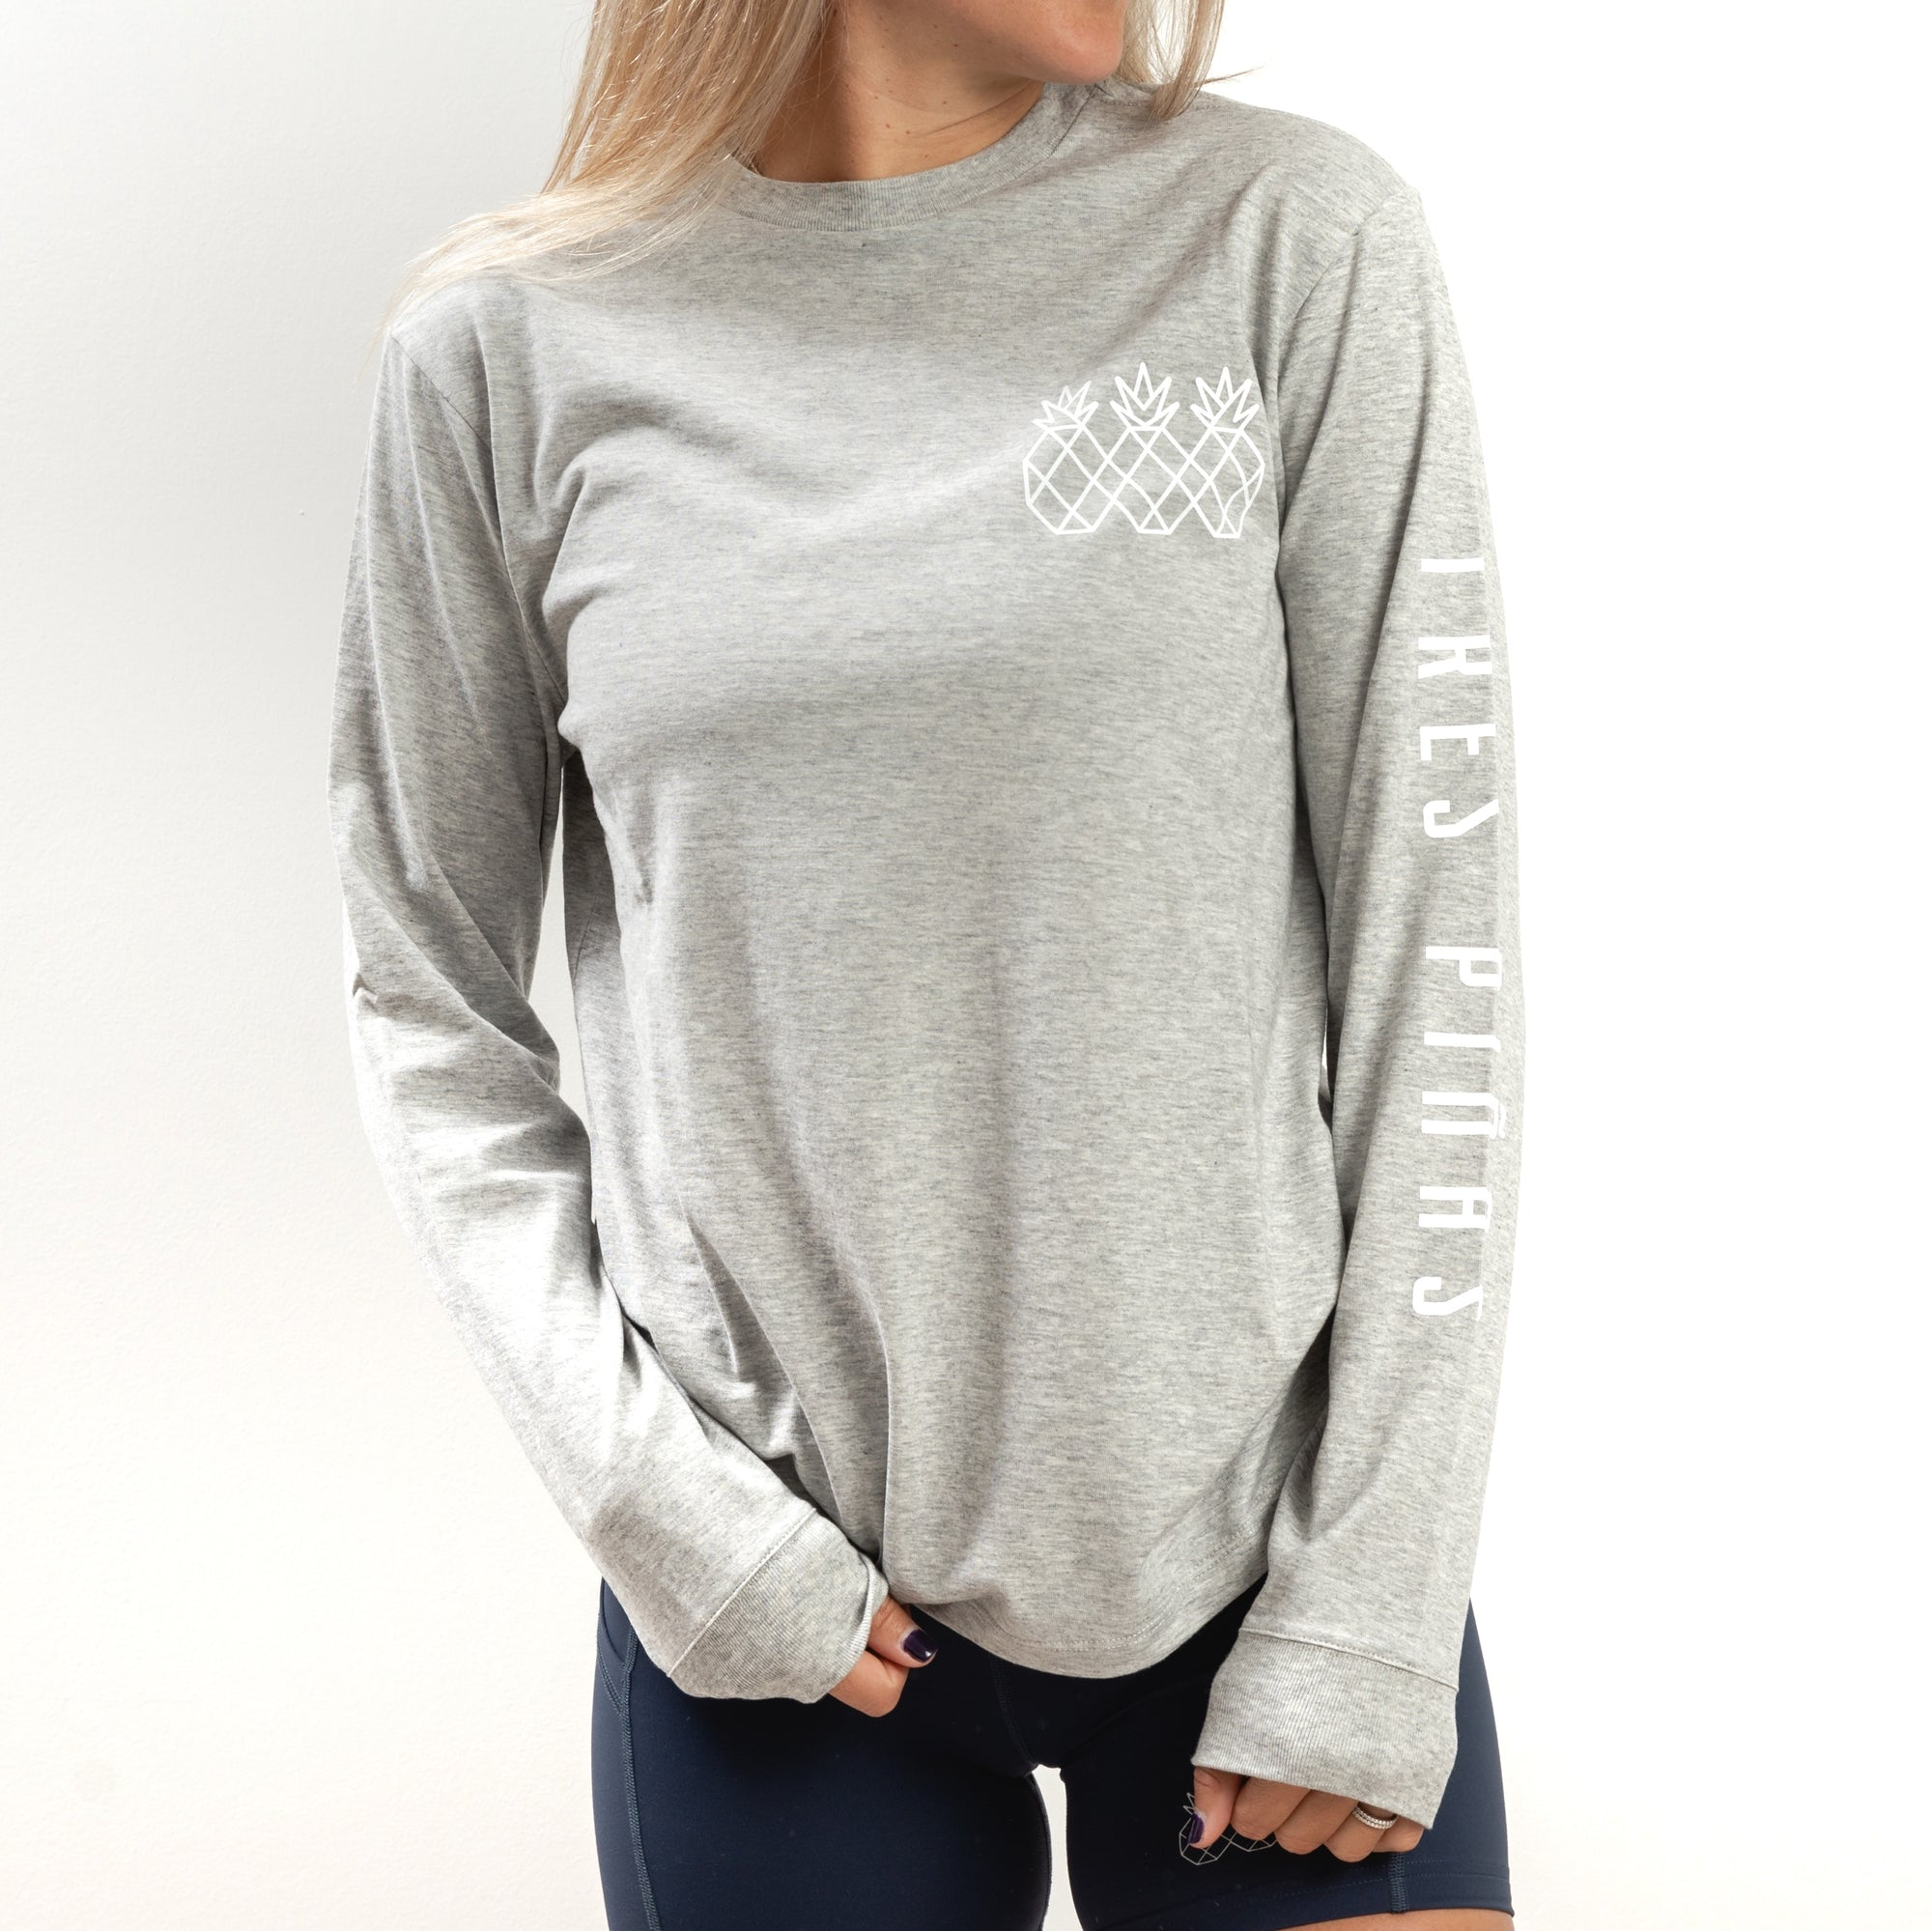 Transition Long Sleeve Tee UNISEX - Grey